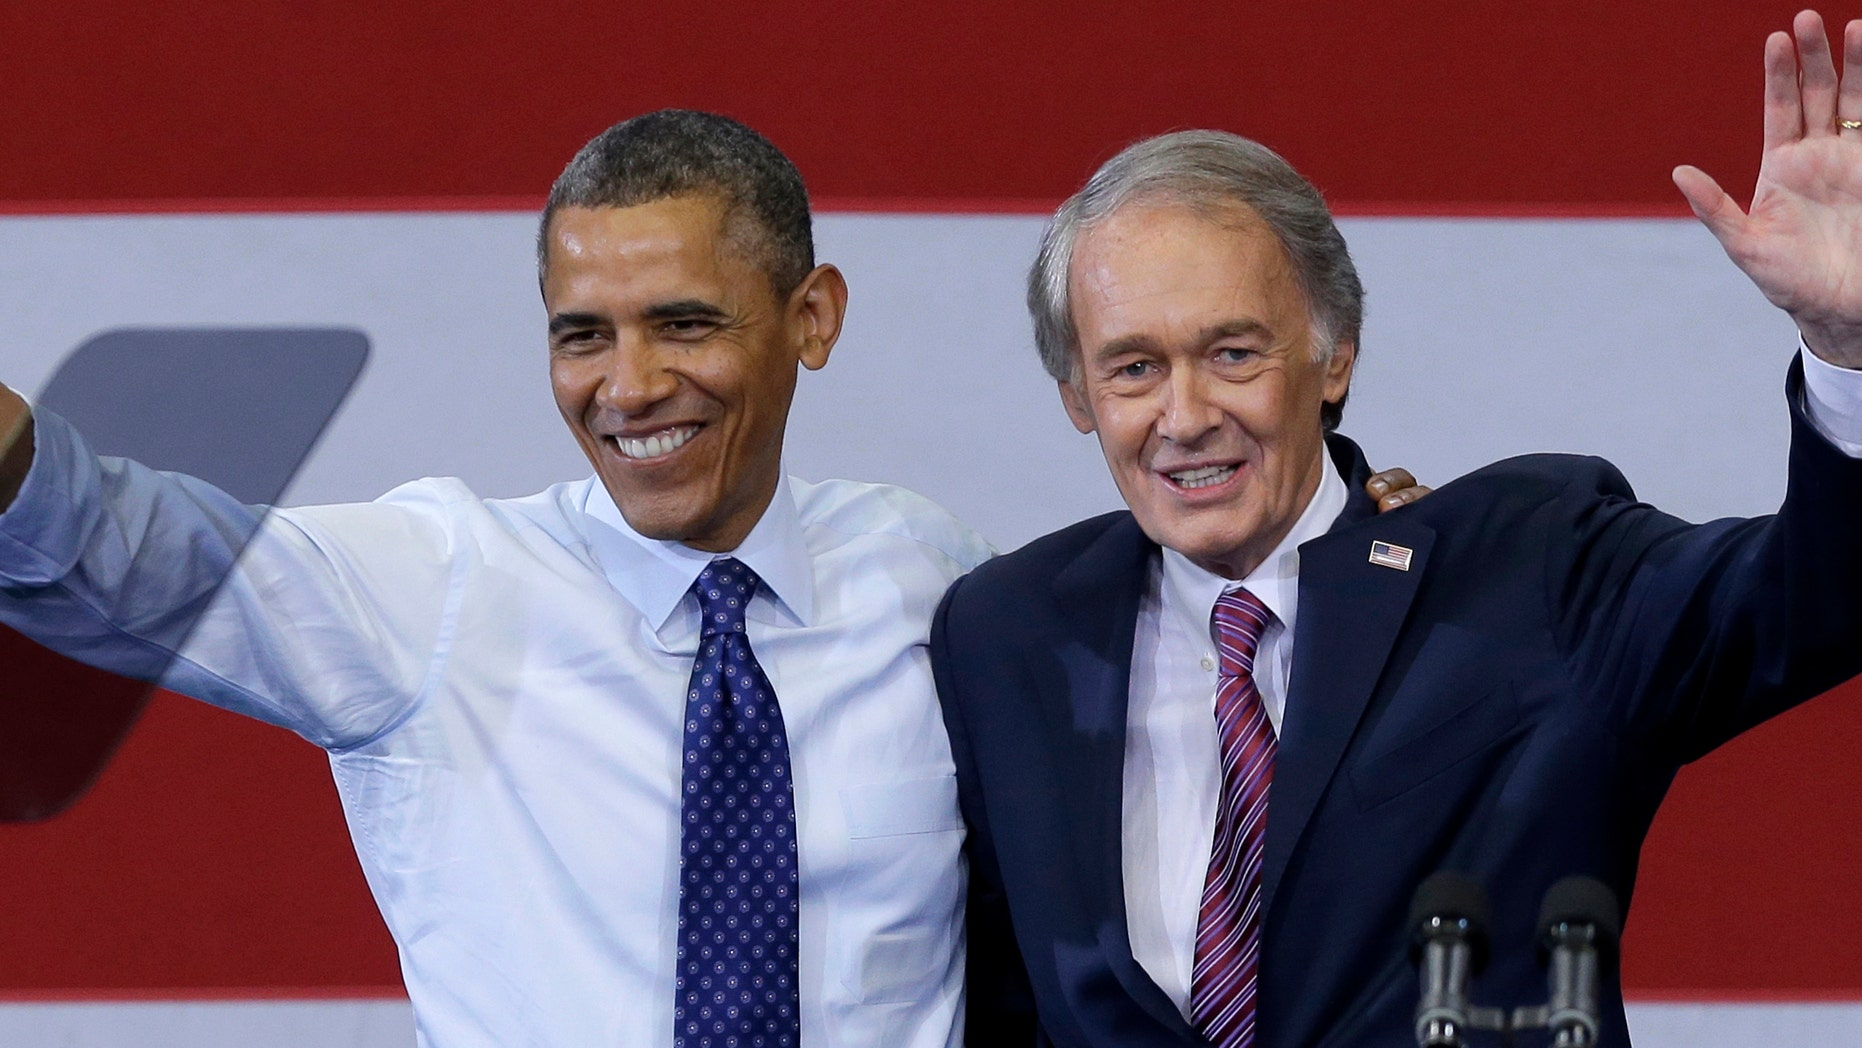 President Barack Obama and Massachusetts Democratic Senate candidate Rep. Ed Markey wave during a campaign rally. Markey is hoping to beat GOP challenger Gabriel Gomez in the special election on June 25.